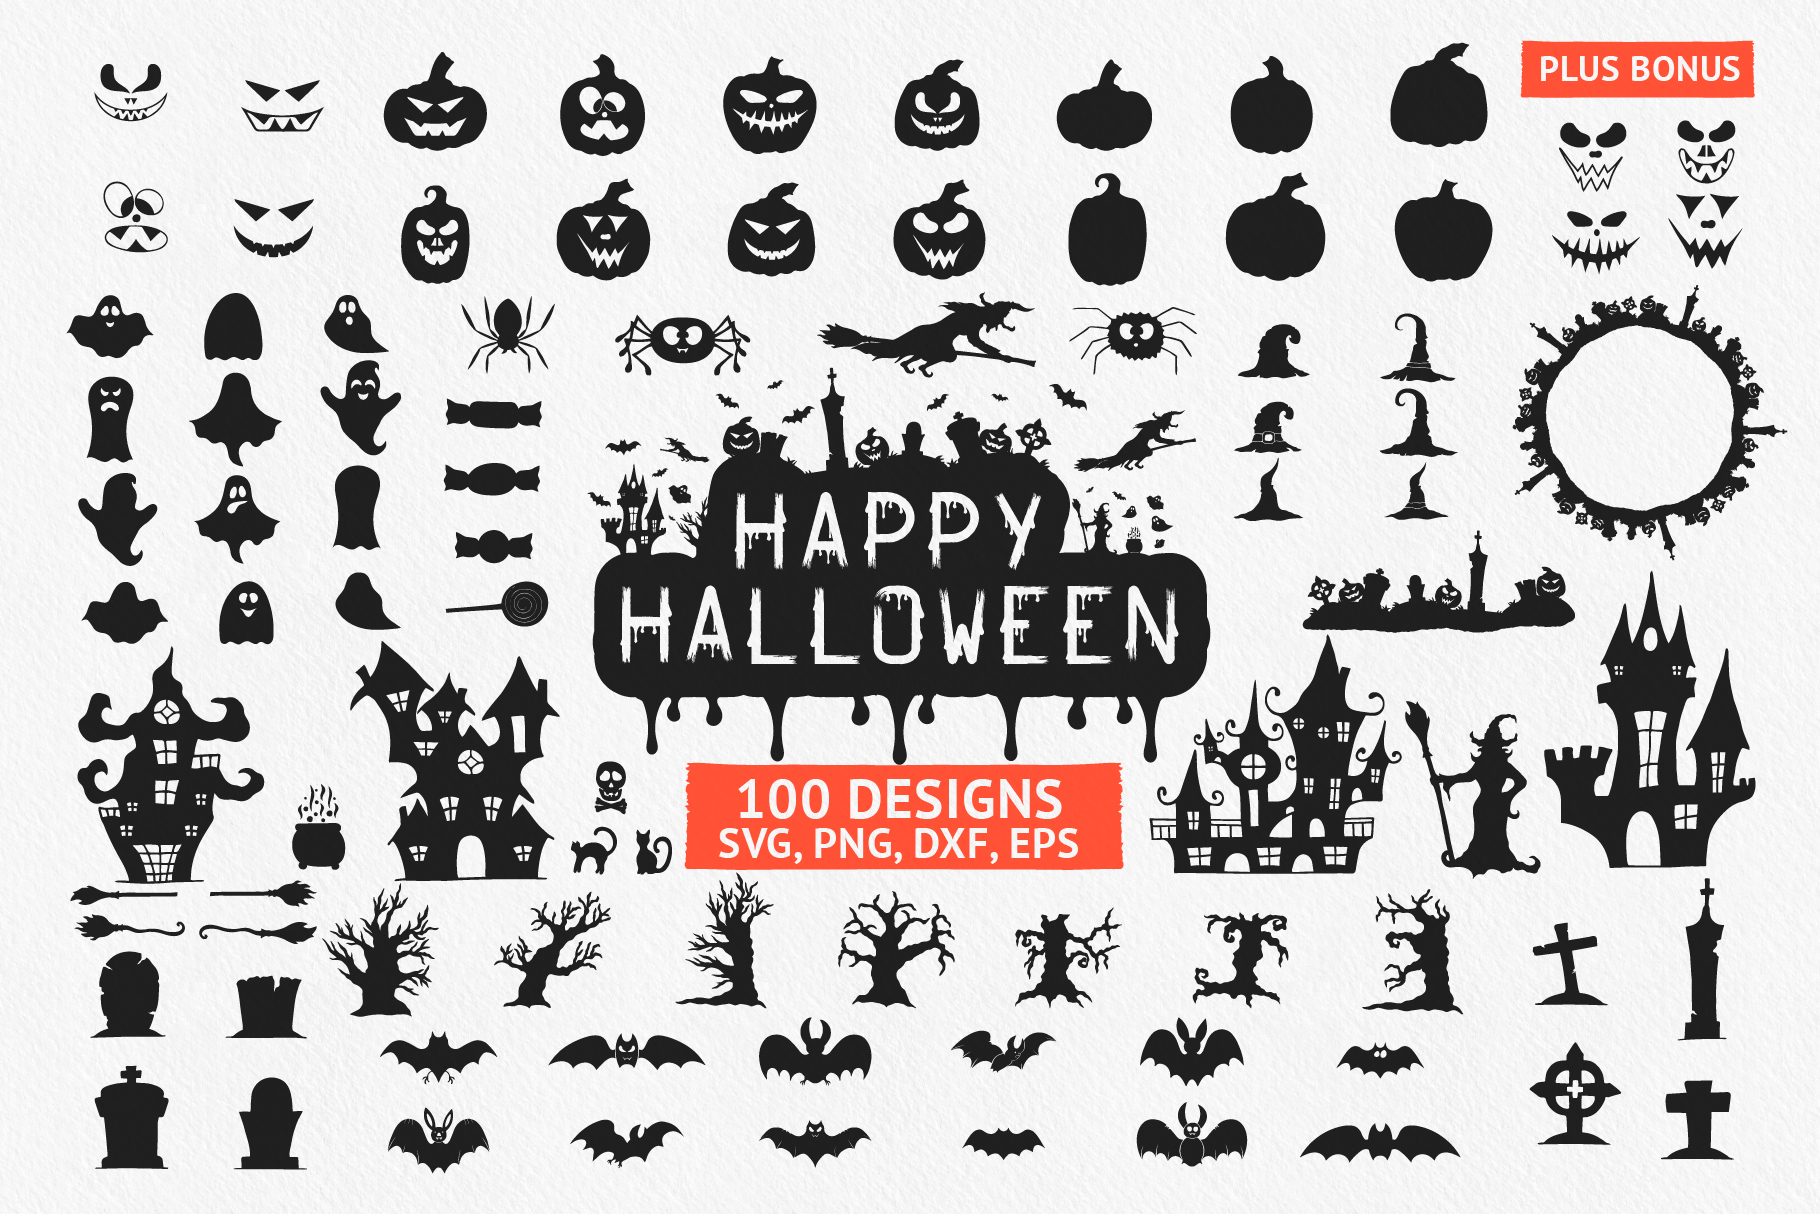 Download Free 100 Hand Drawn Halloween Designs Quotes Graphic By Kirill S for Cricut Explore, Silhouette and other cutting machines.